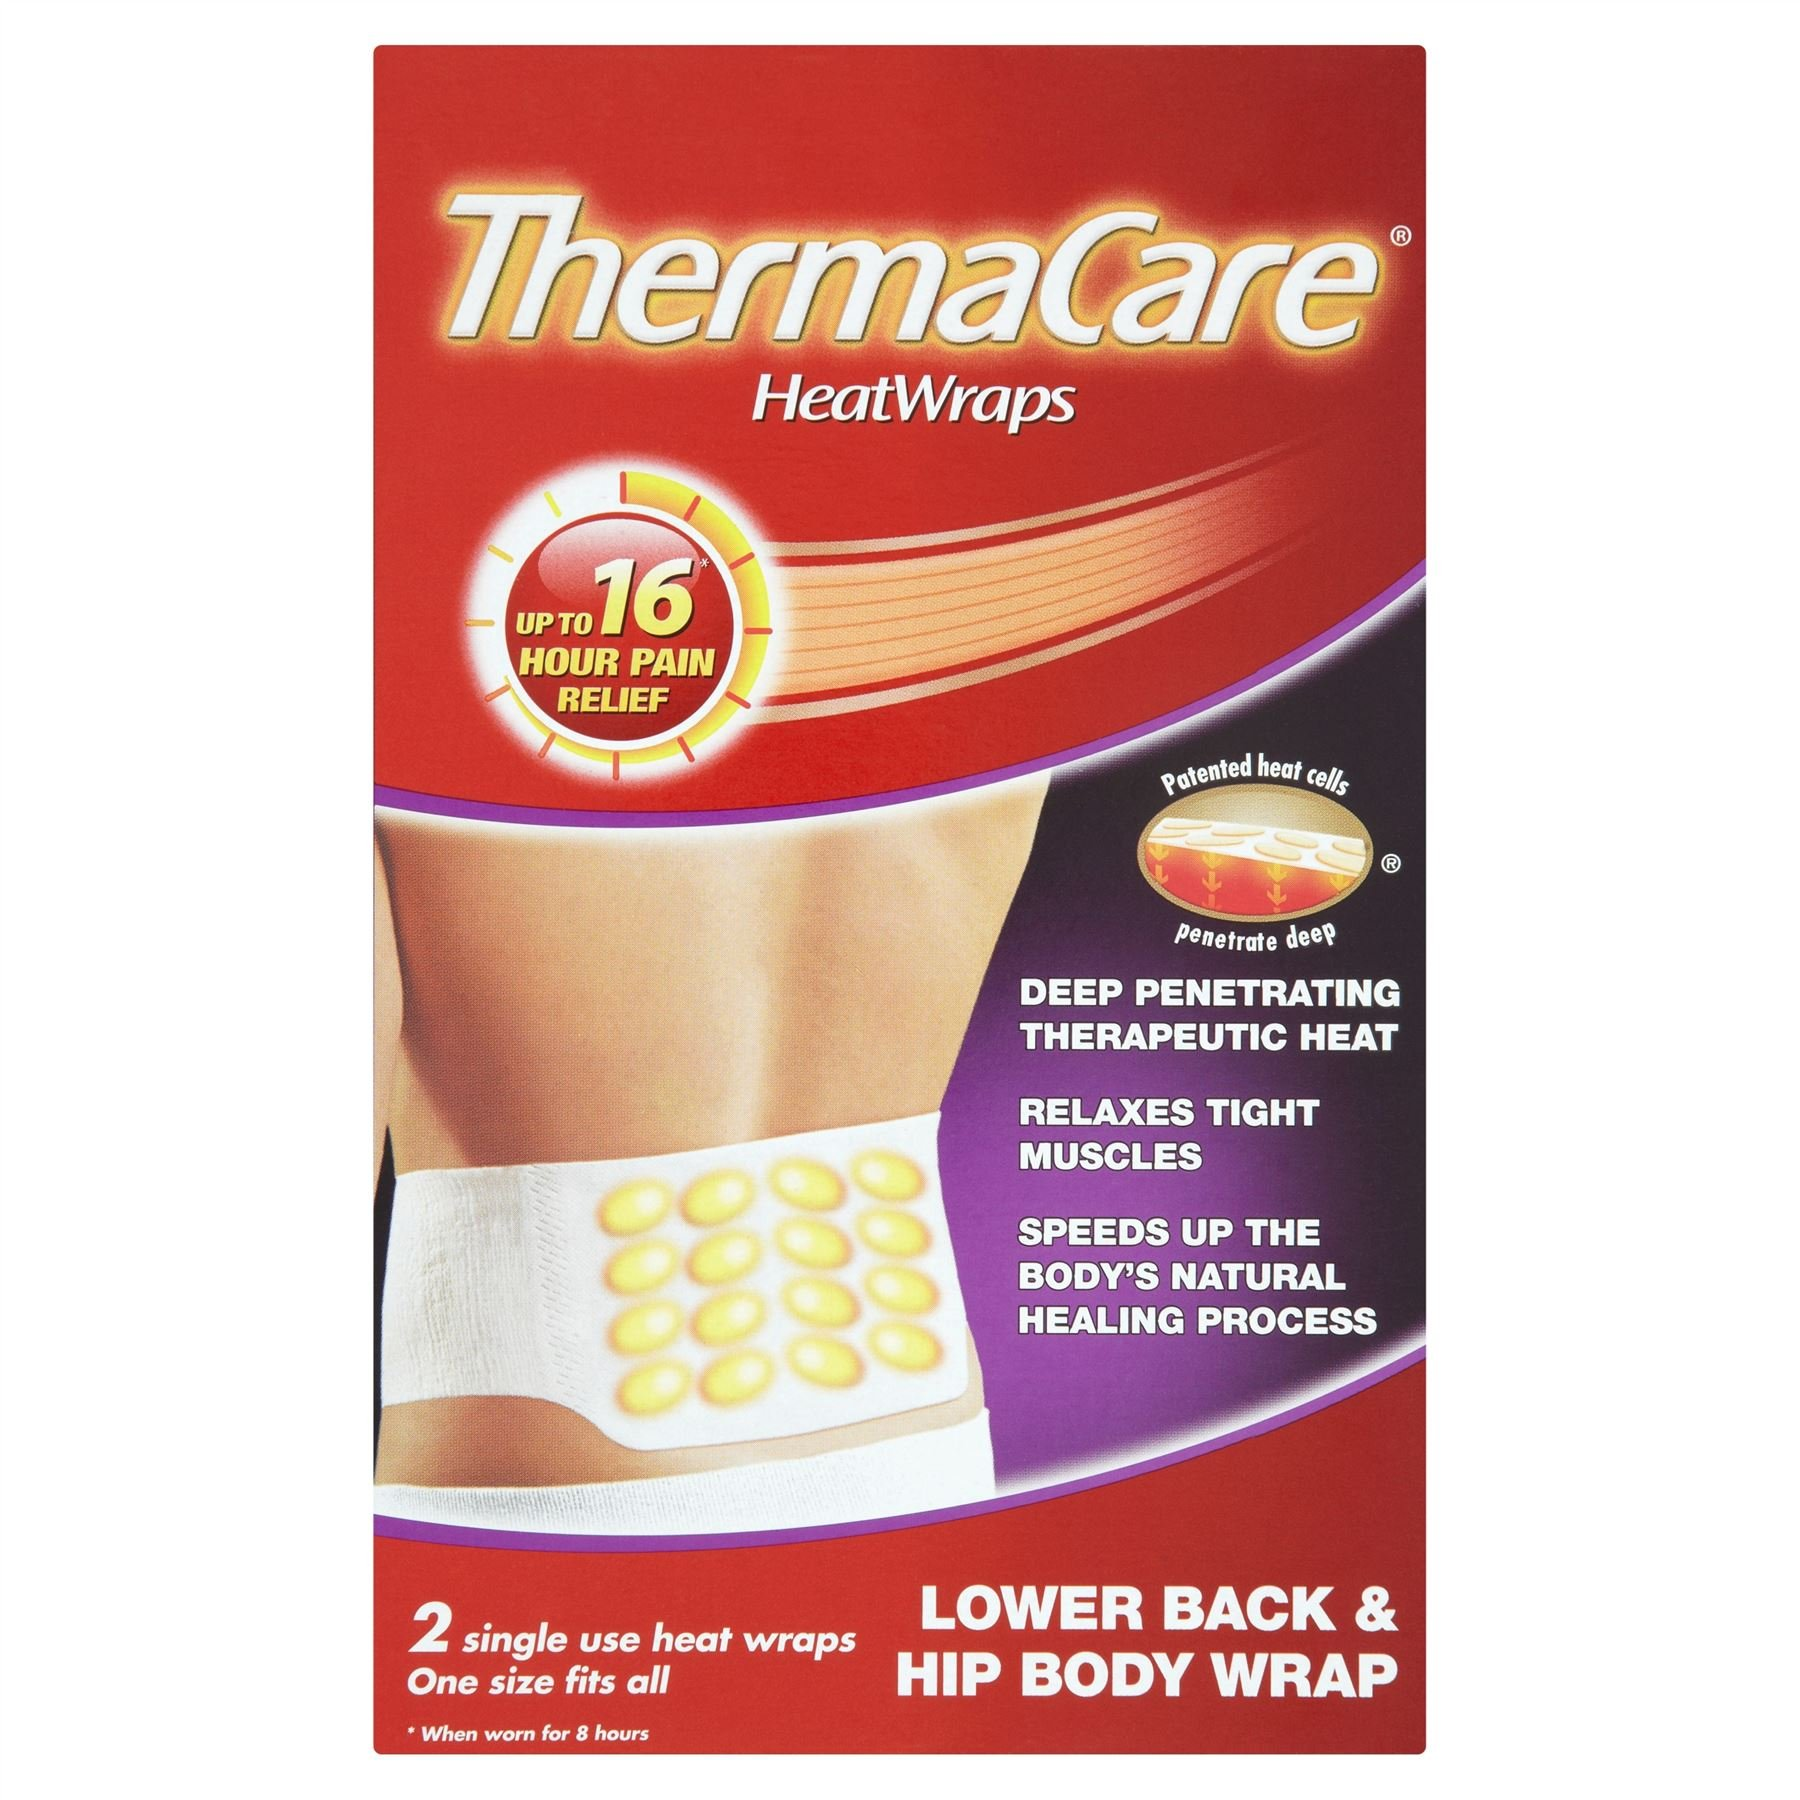 Thermacare Lower back Heat Wraps (4 x 2 Pack = 8 Wraps)